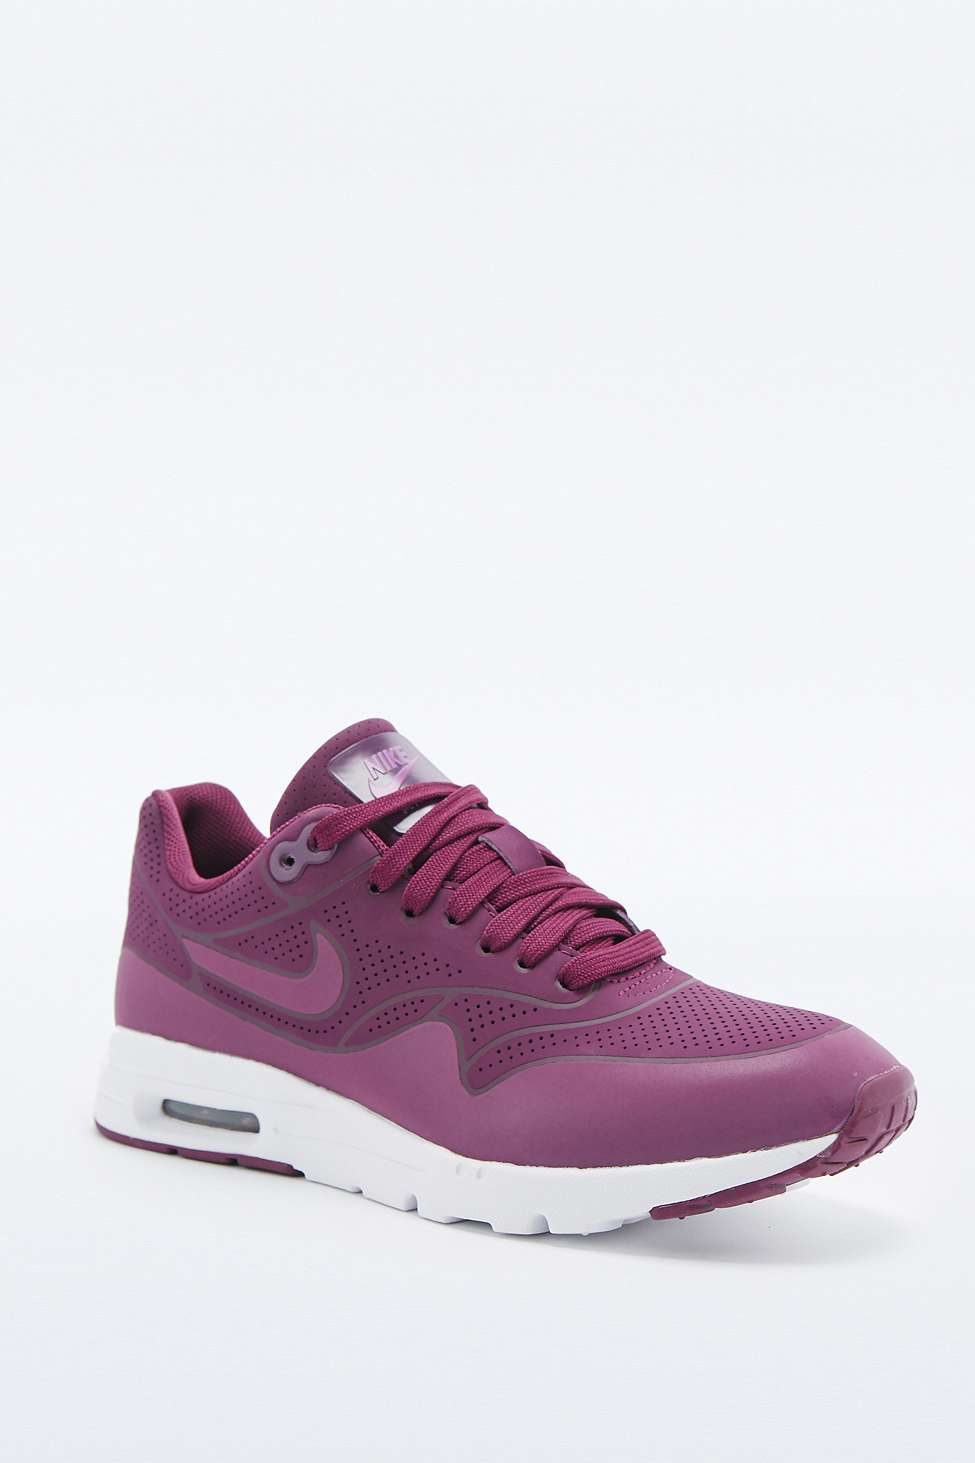 new product aa7a6 3047d Nike Air Max 1 Ultra Moire Burgundy Trainers in Purple - Lyst